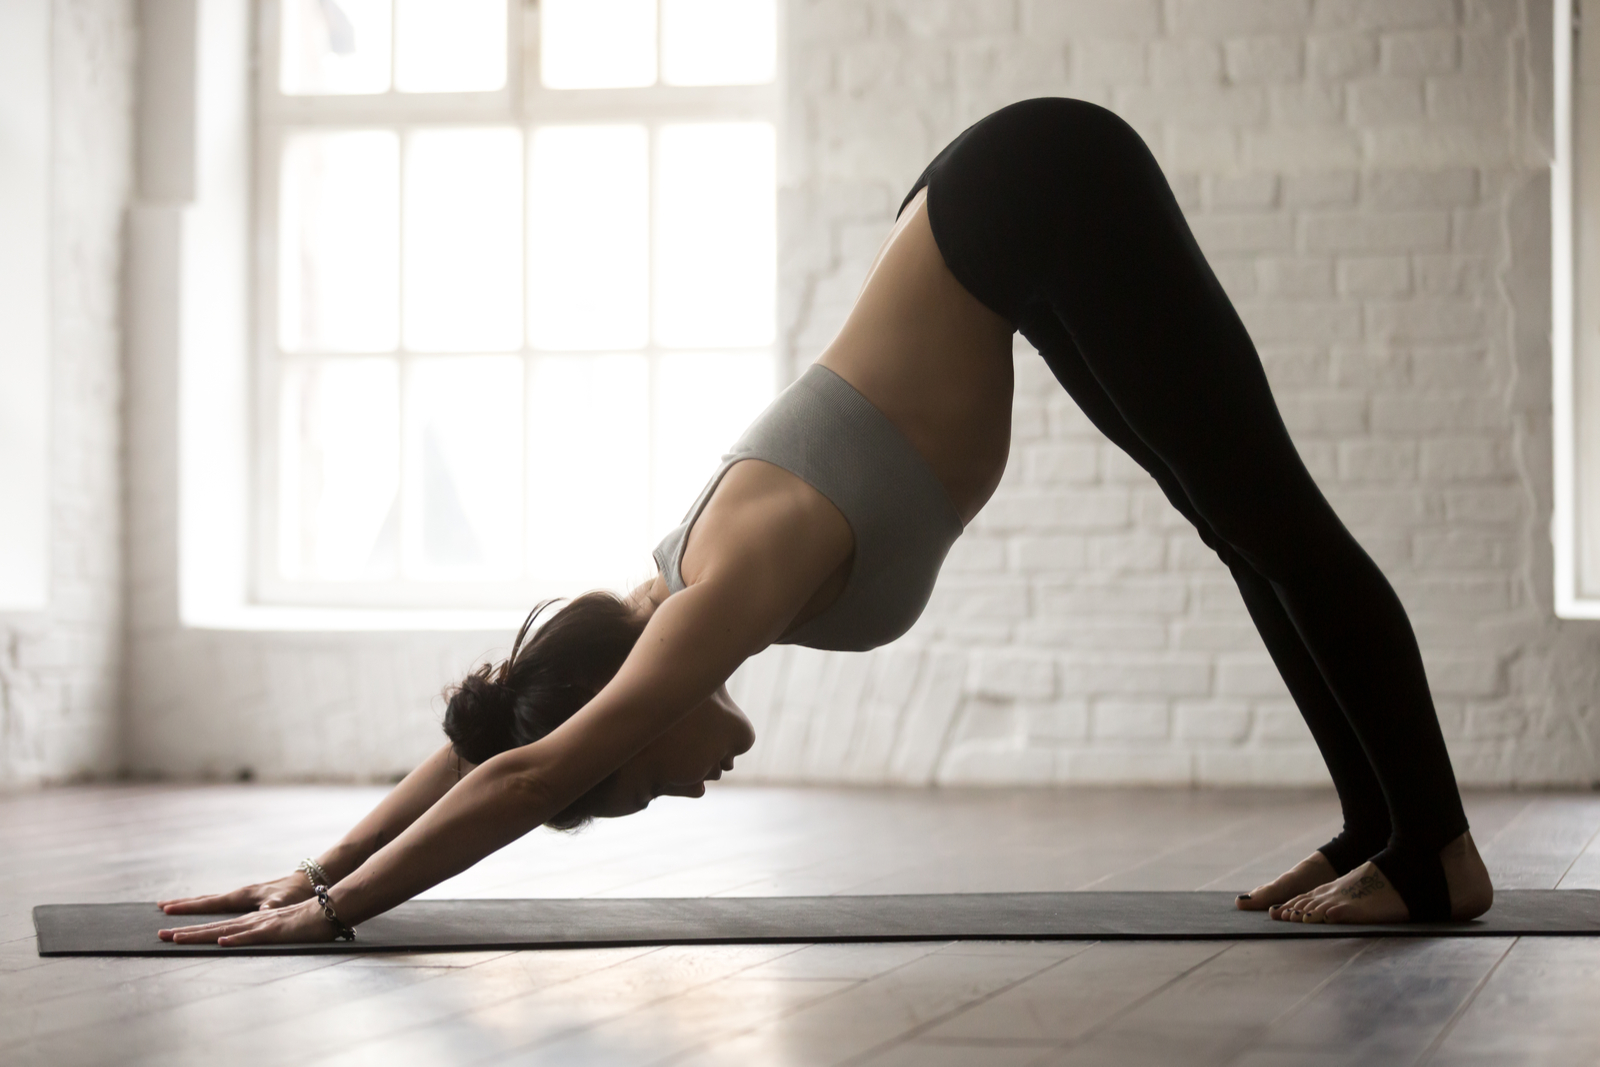 Downward Facing Dog | Yoga for Beginners: A Definitive Guide If You're New To Yoga